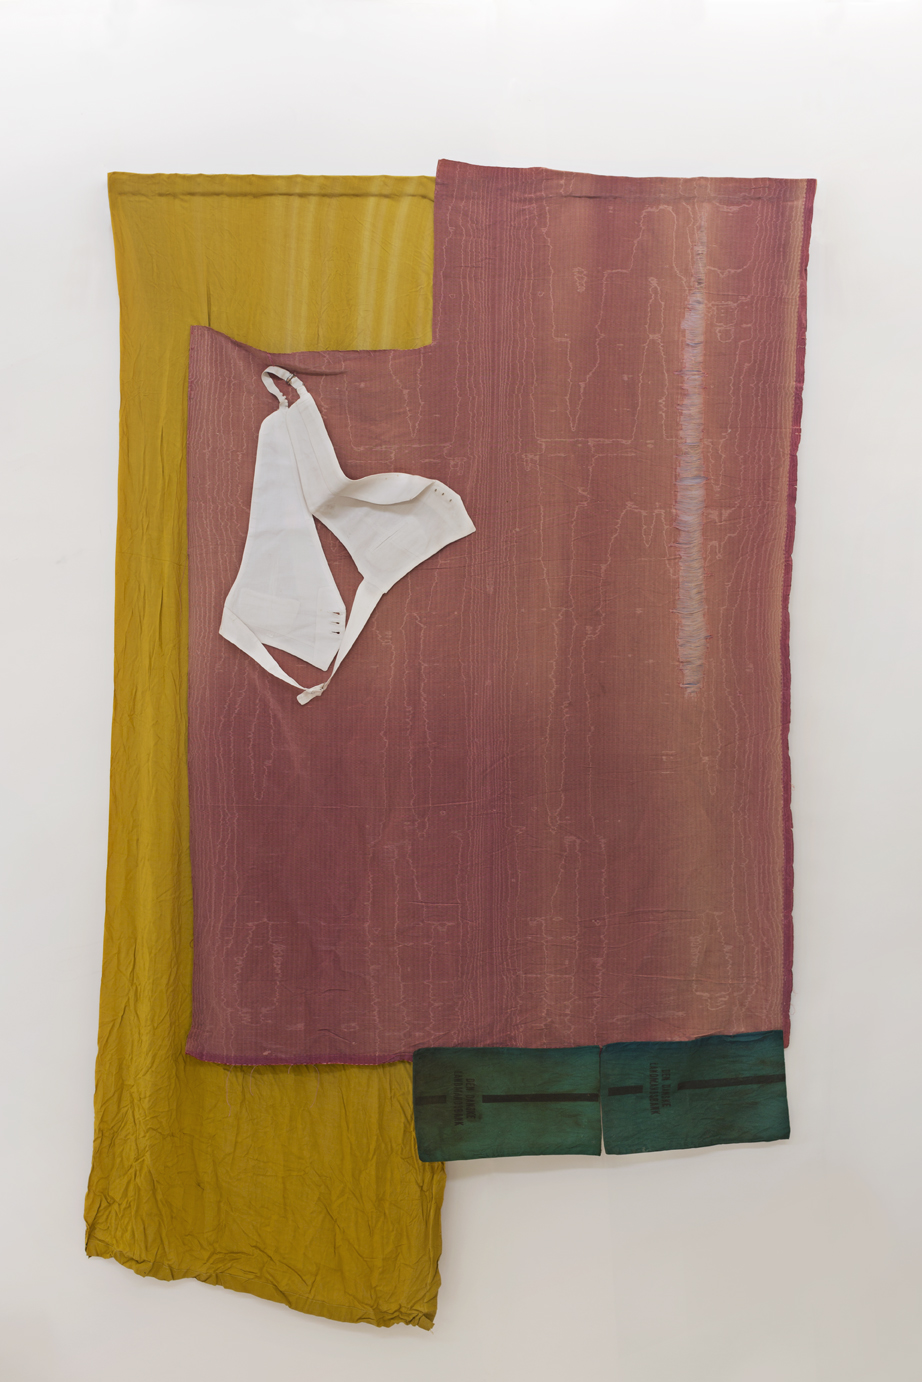 Sværmer, (Moth), Curtain, textile in solution, dressing suit, money bags from the 1920's bankerupt Landmandsbank (Danish bank), 230 x 175 x 8 cm, 2018